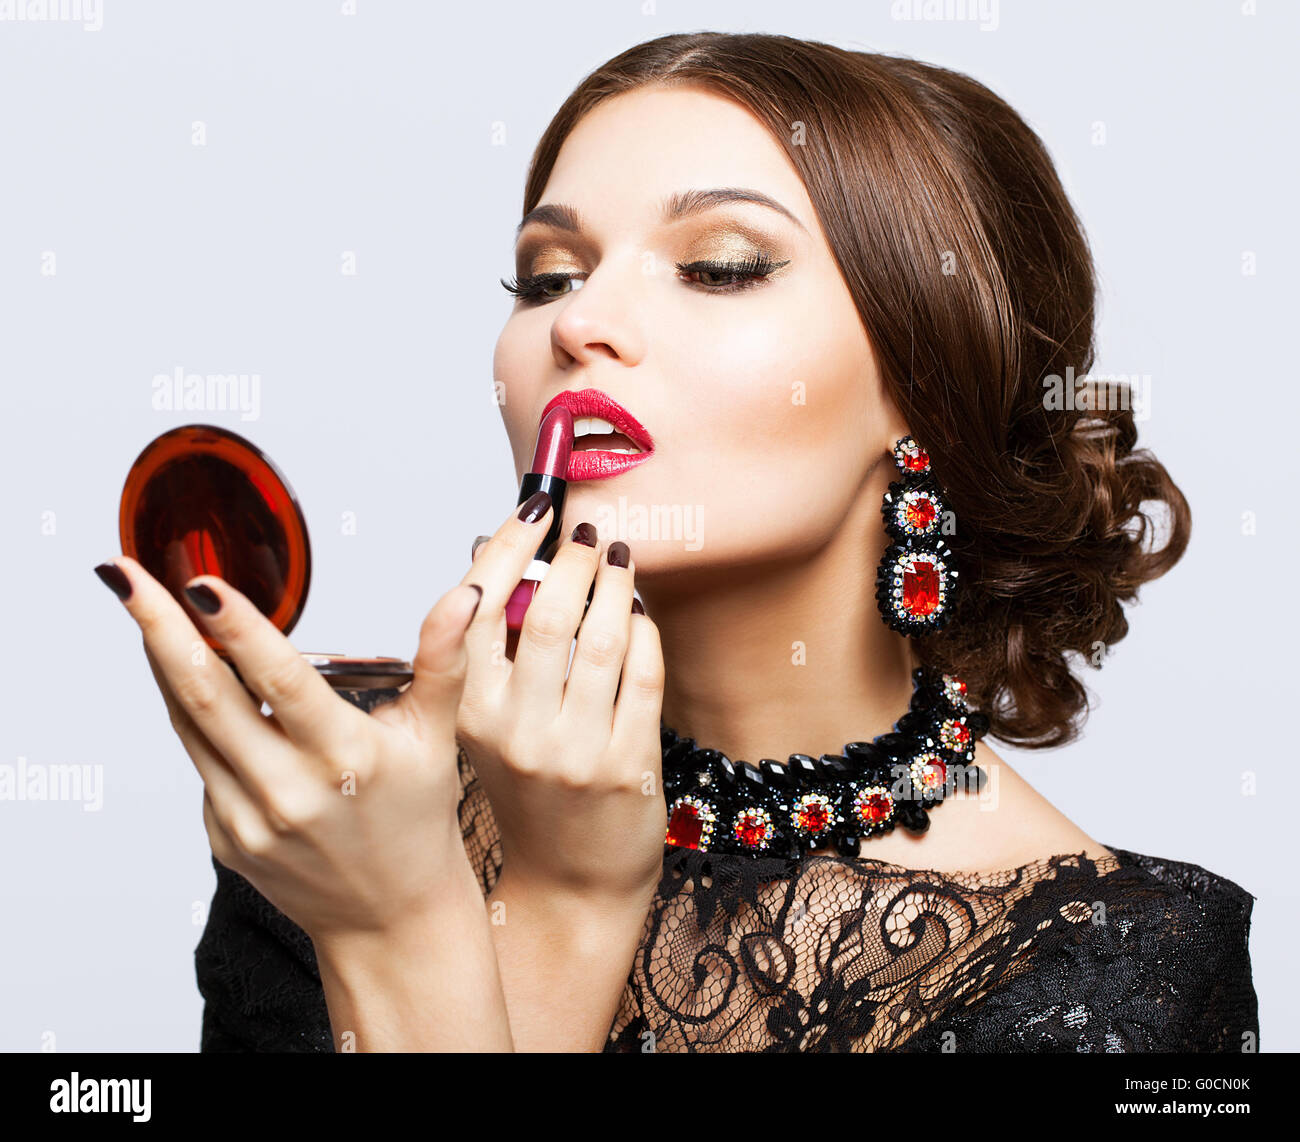 Black dress lipstick - Makeup Of Young Beautiful Brunette Woman In Black Dress With Lipstick And Mirror In Hands